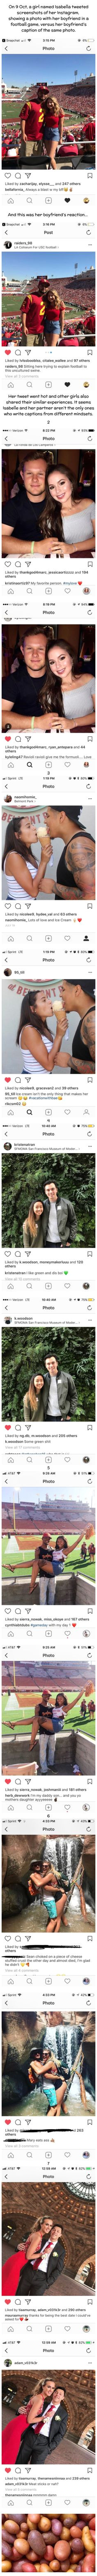 couples different captions on same photo prove that women and men are worlds apart